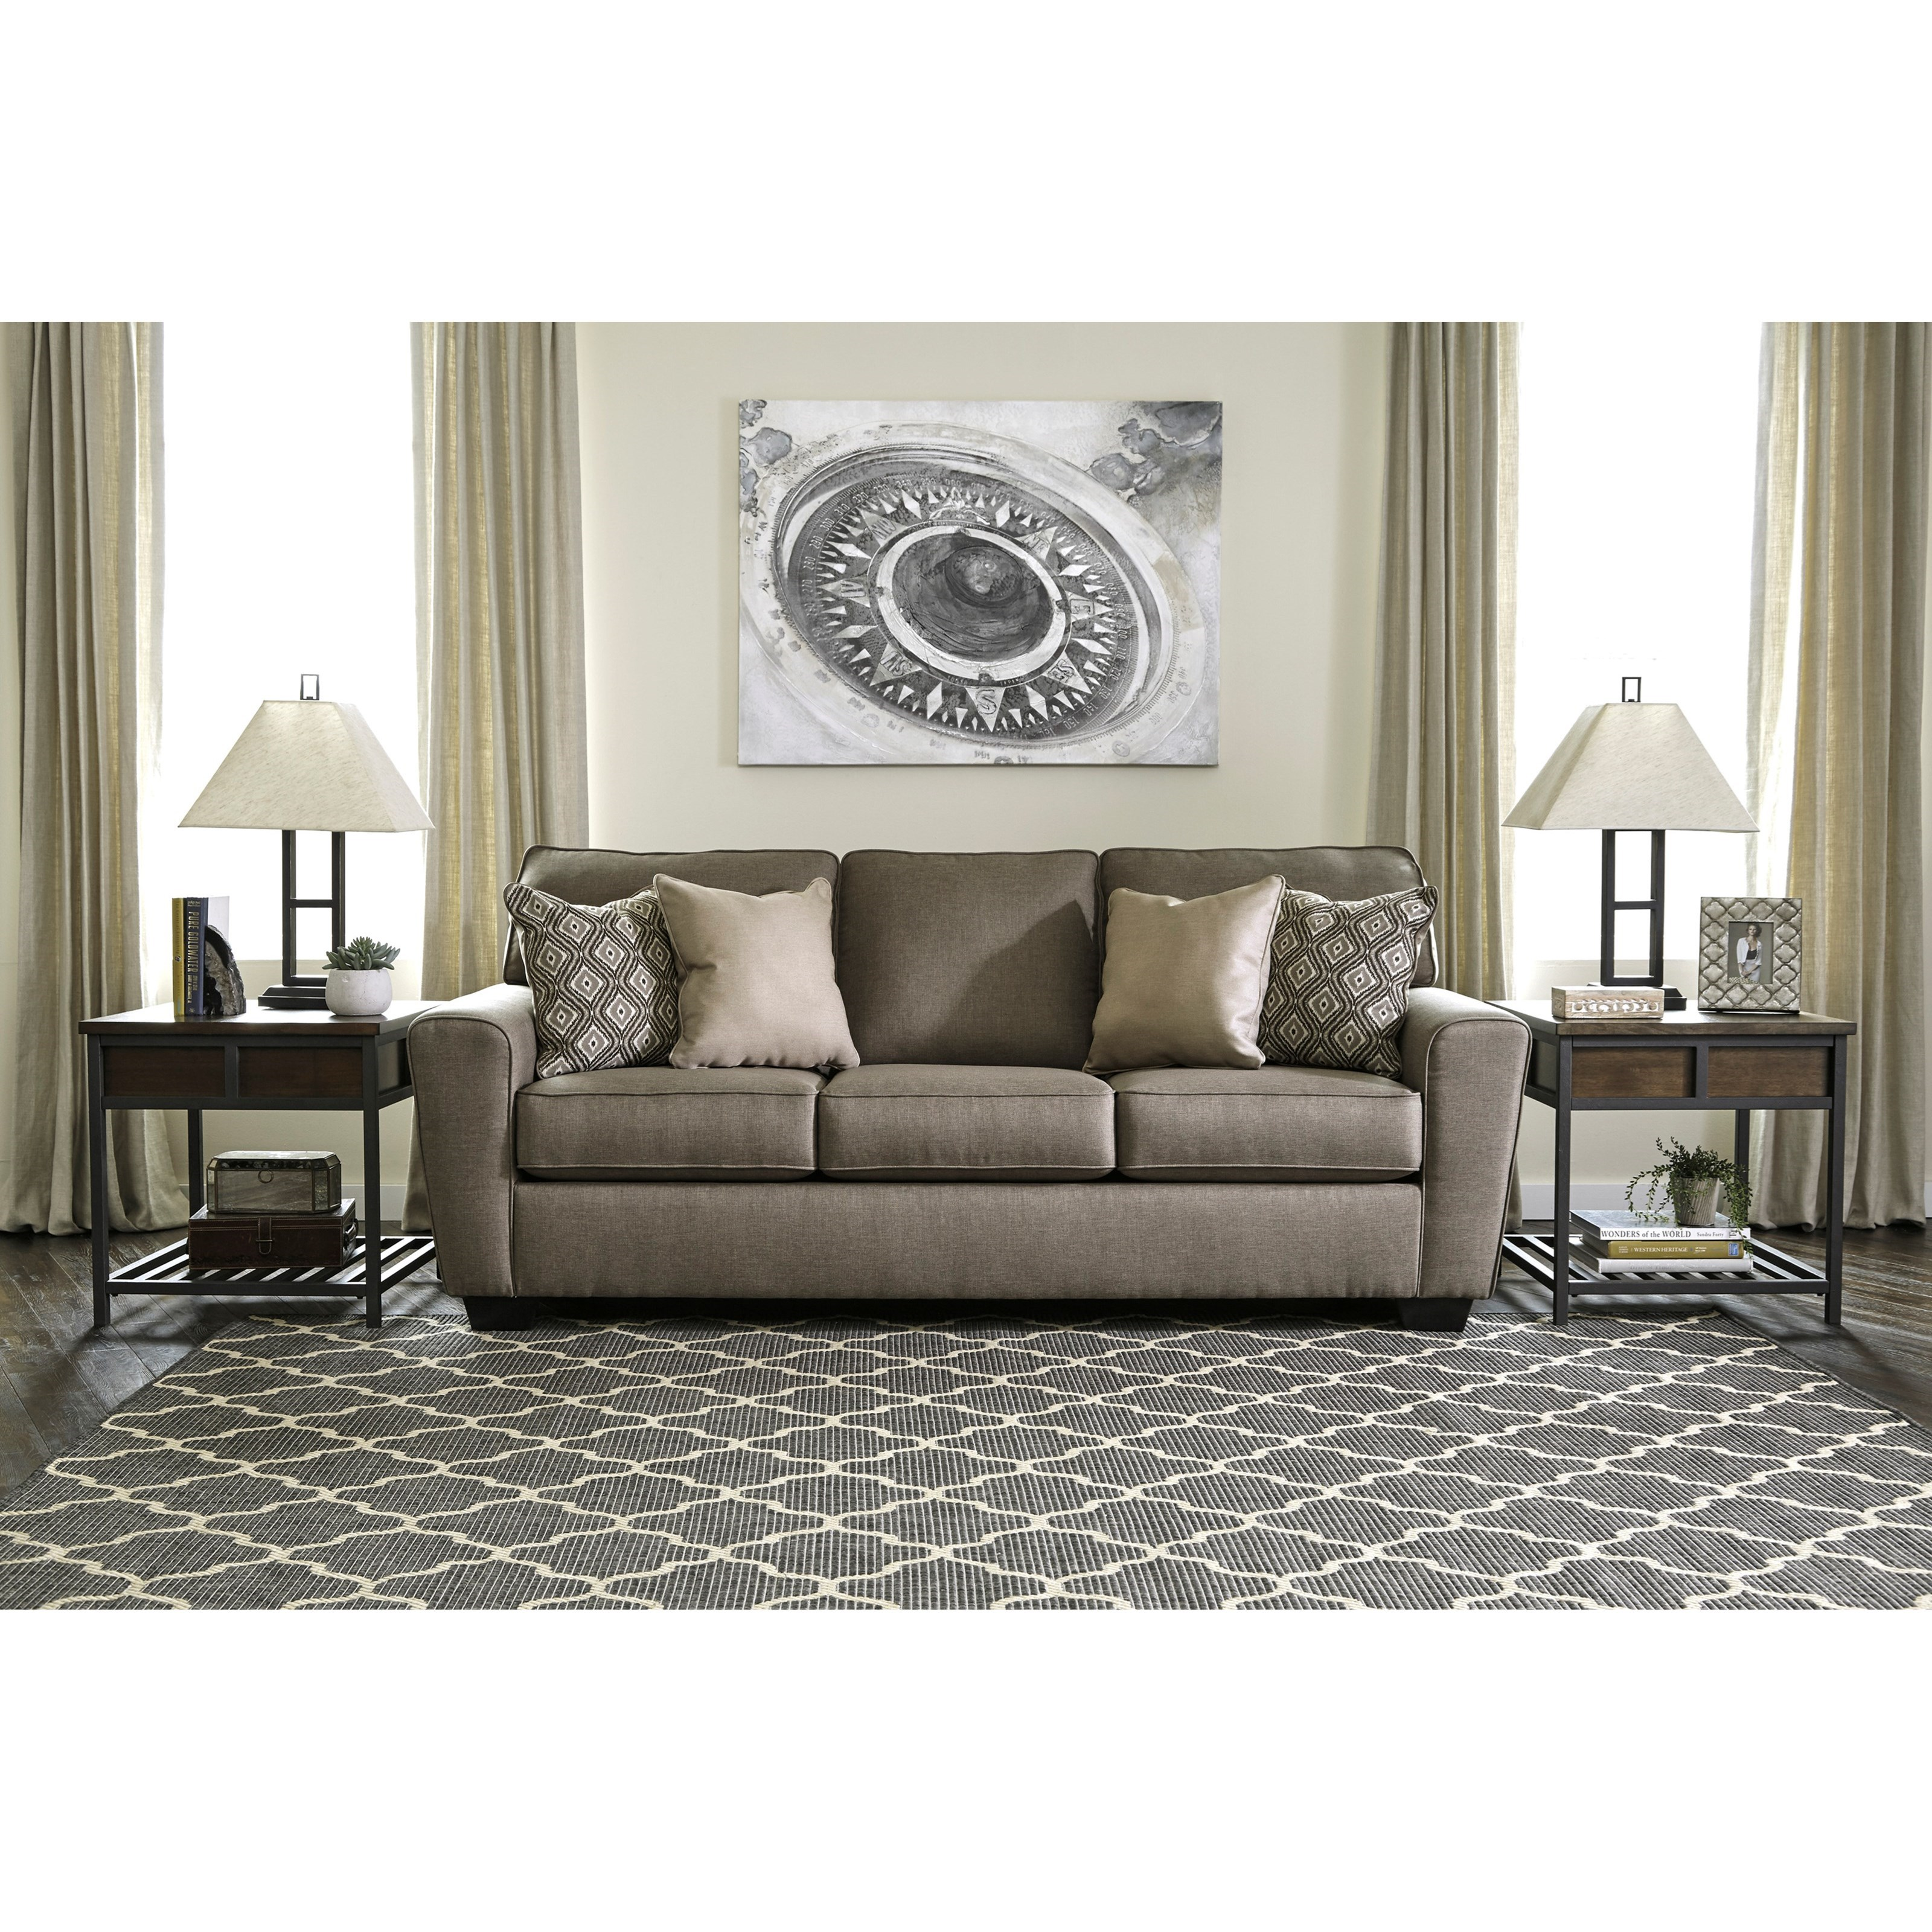 Ashley Sofas Prices: Benchcraft By Ashley Calicho Contemporary Queen Sofa